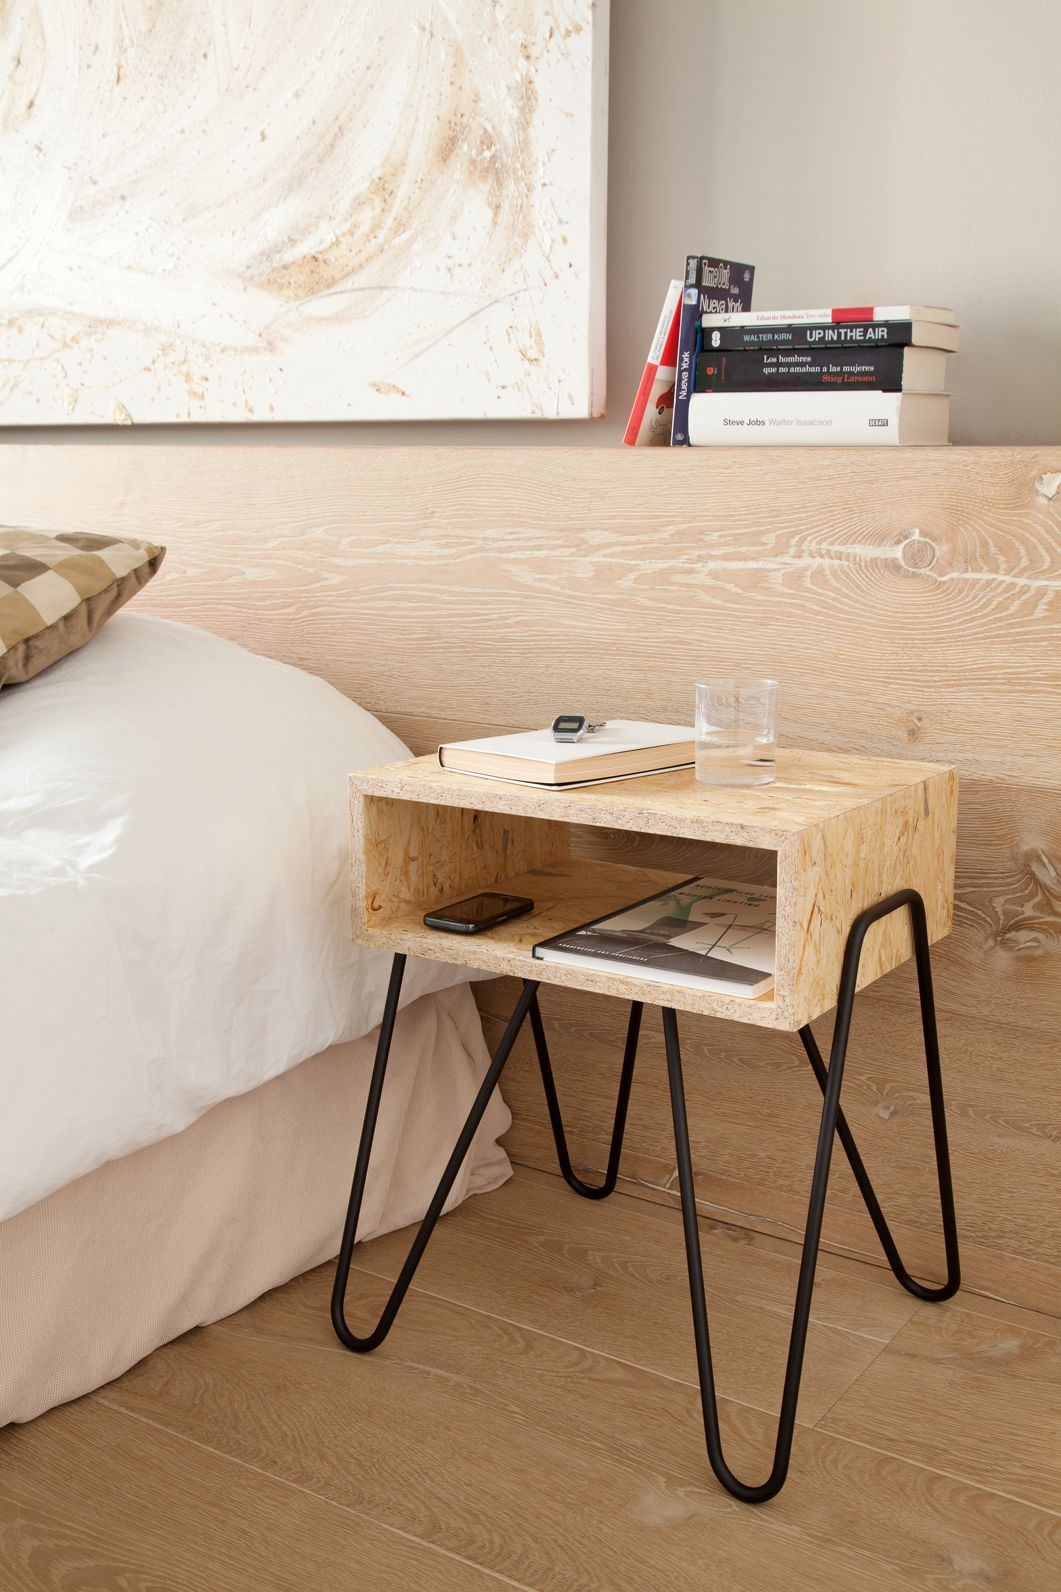 HANDY designed by Adolfo Abejón. Side table made with OSB and iron